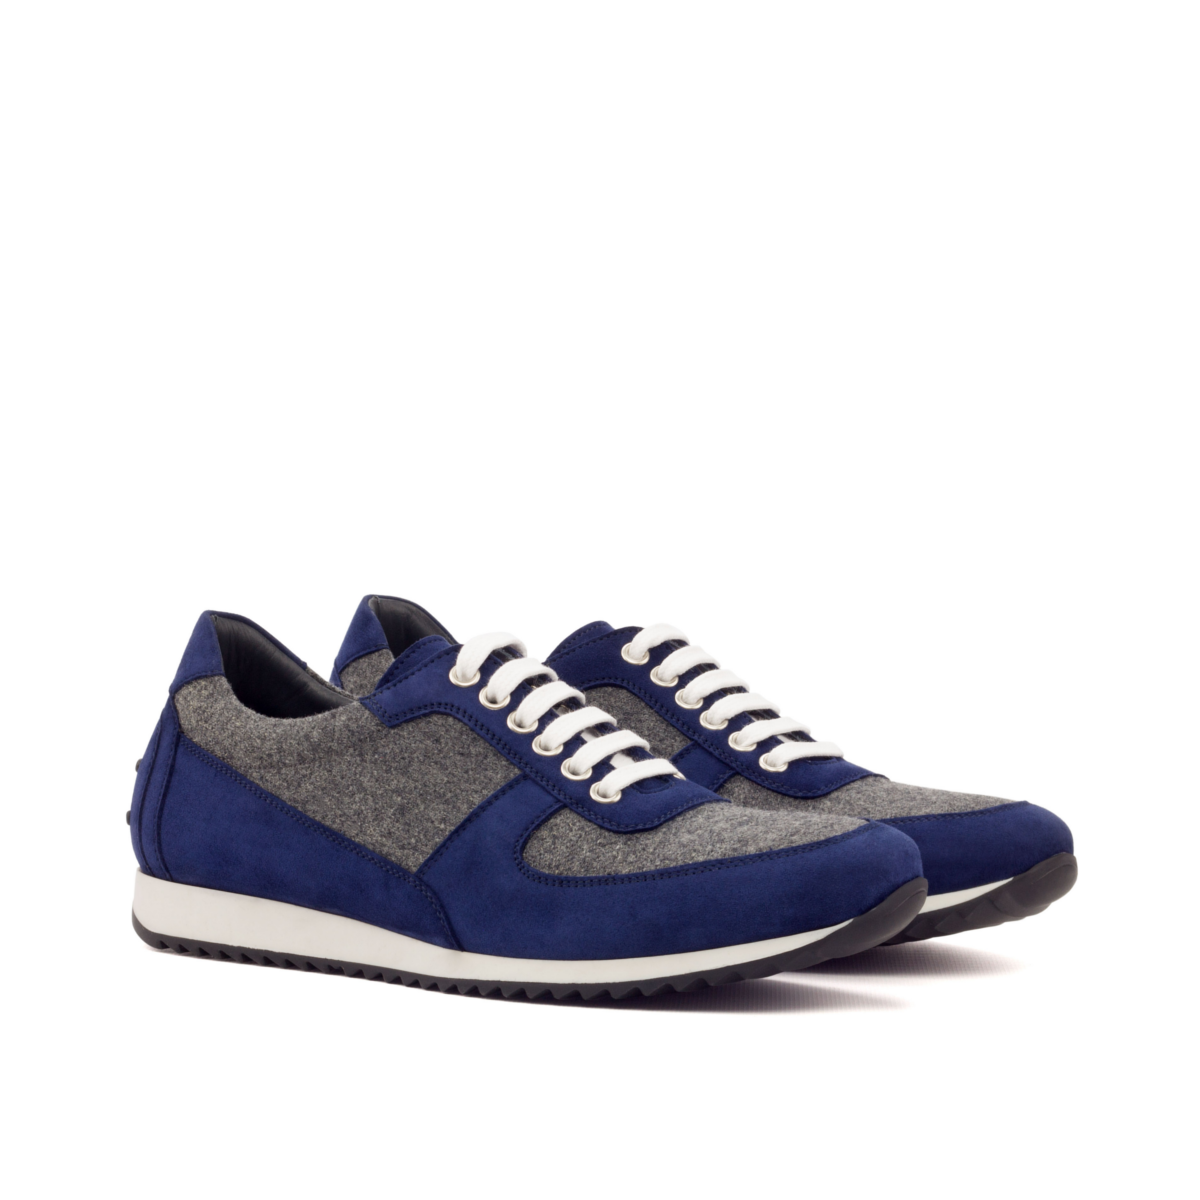 LEO blue suede and grey flannel corsini sneakers